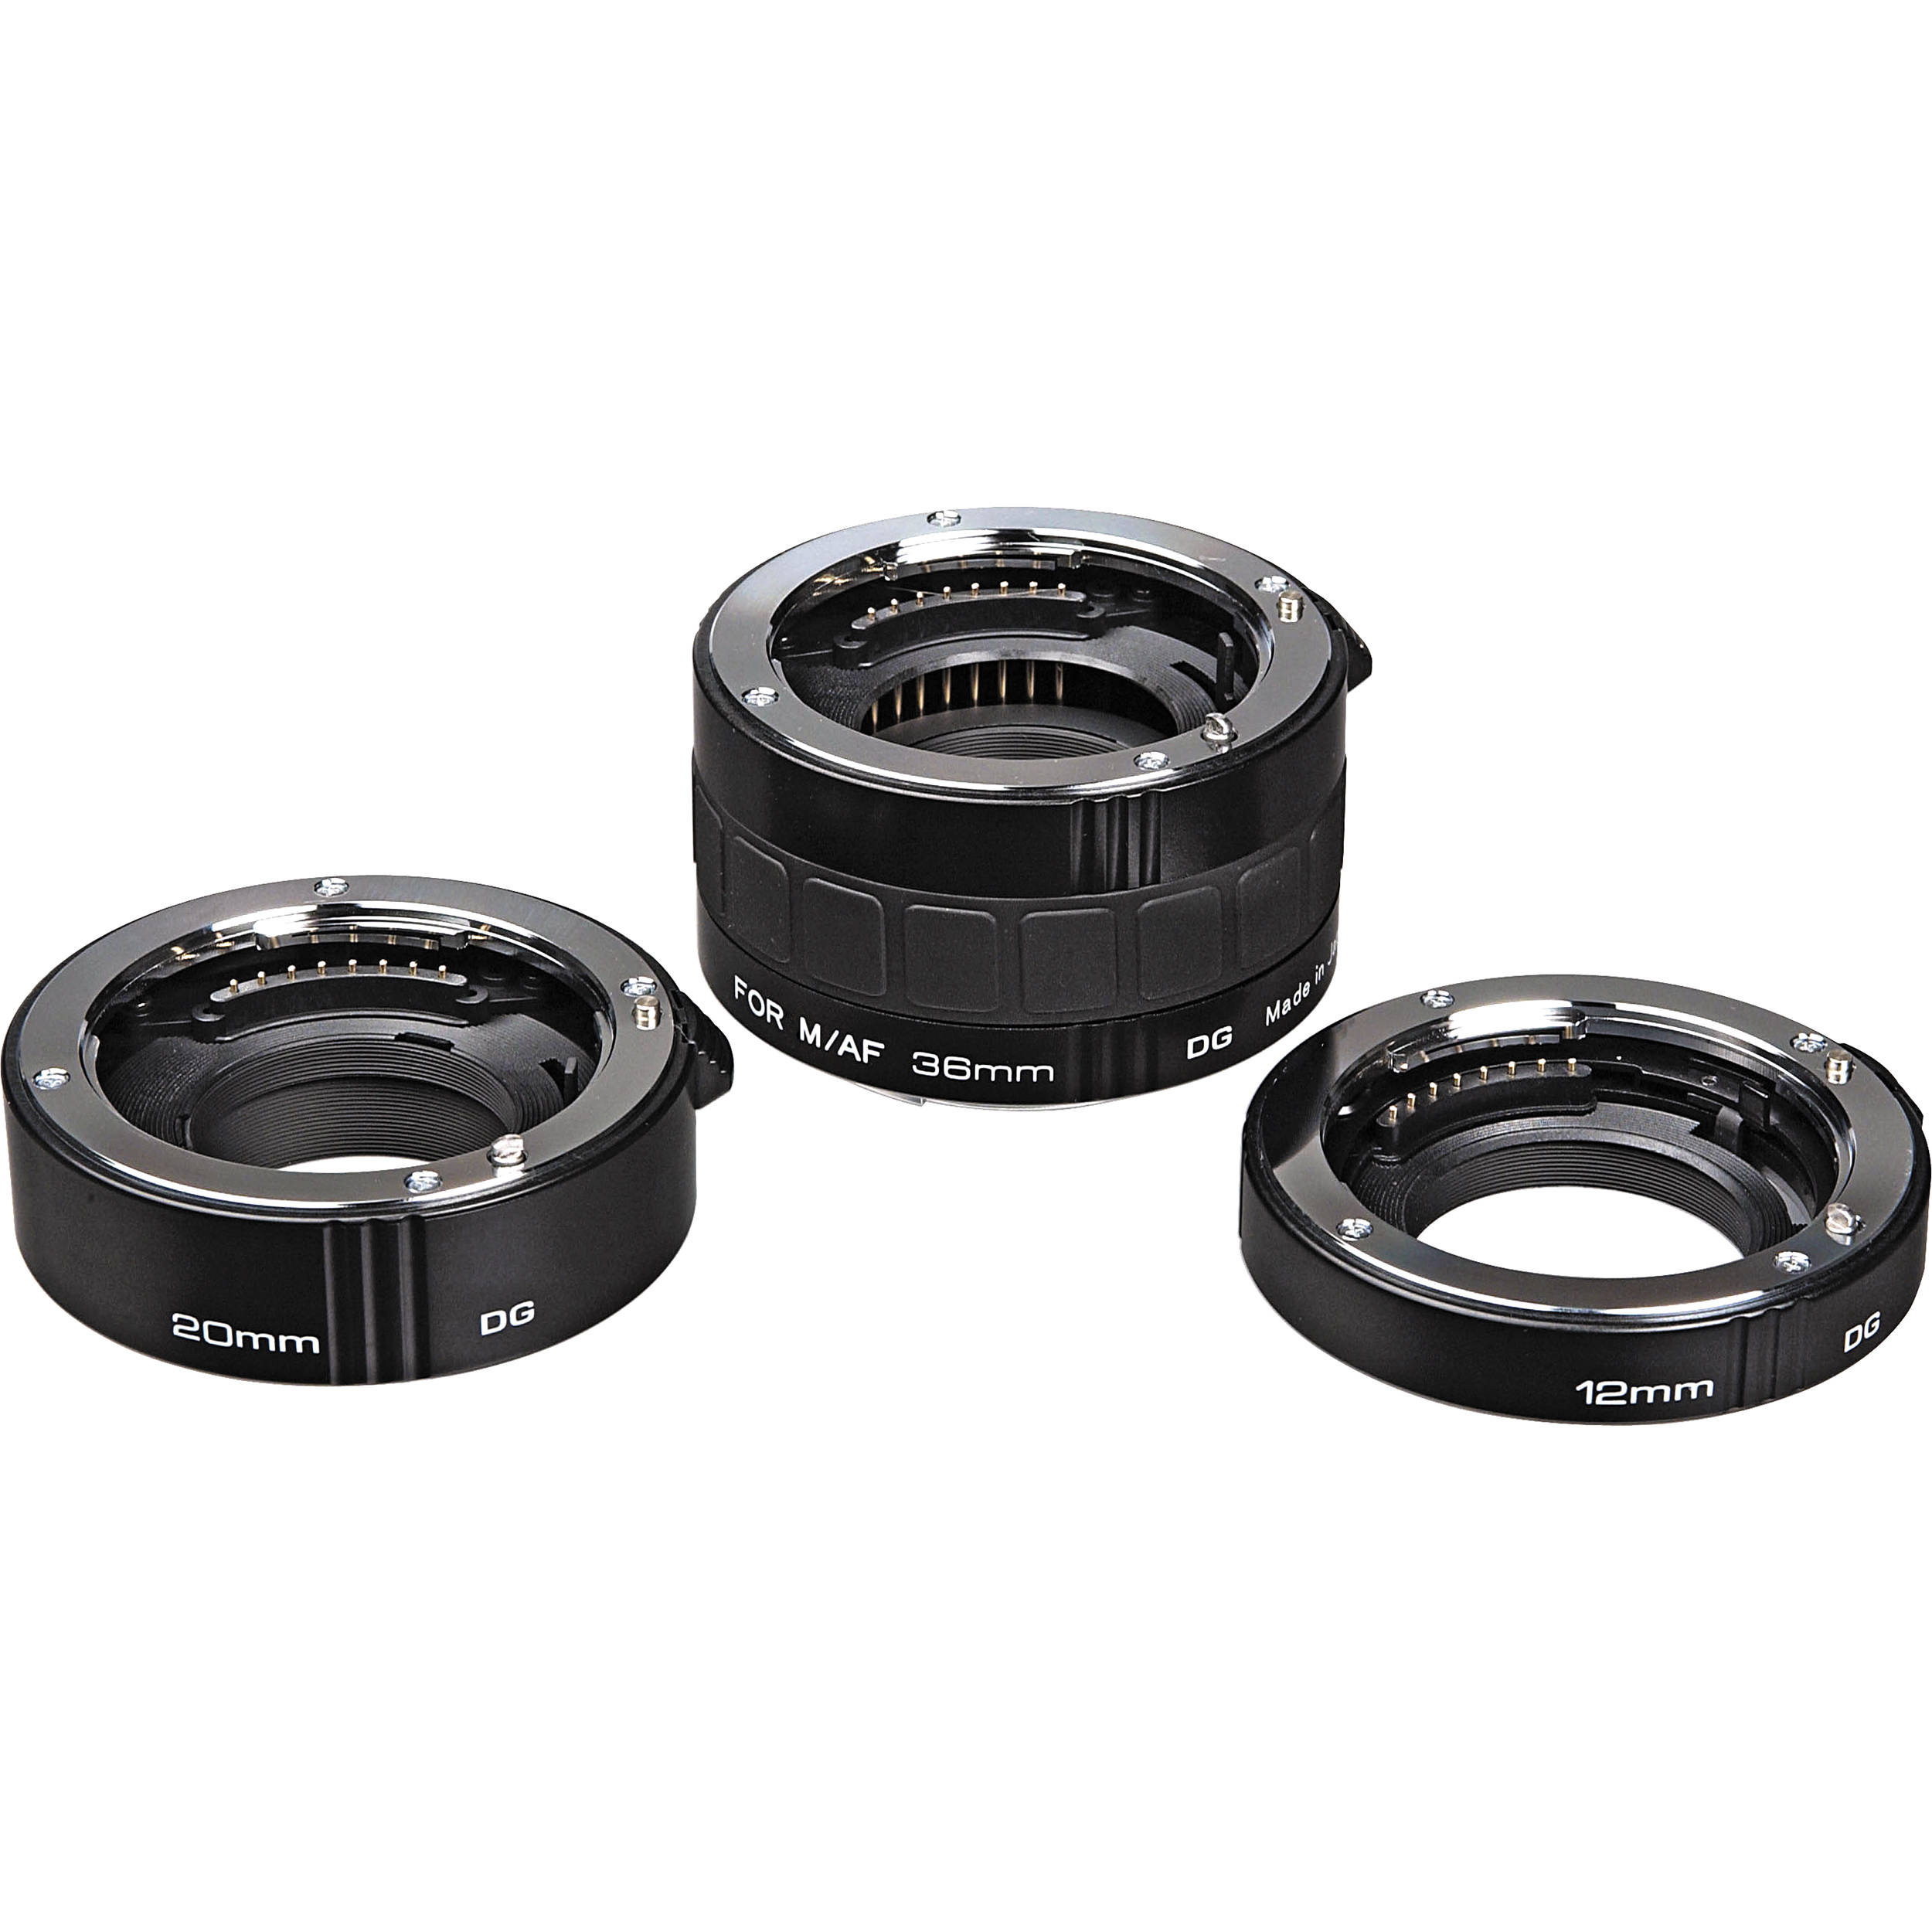 3 Rings Nikon AF for macro photography Kenko Automatic Extension Tube Set DG